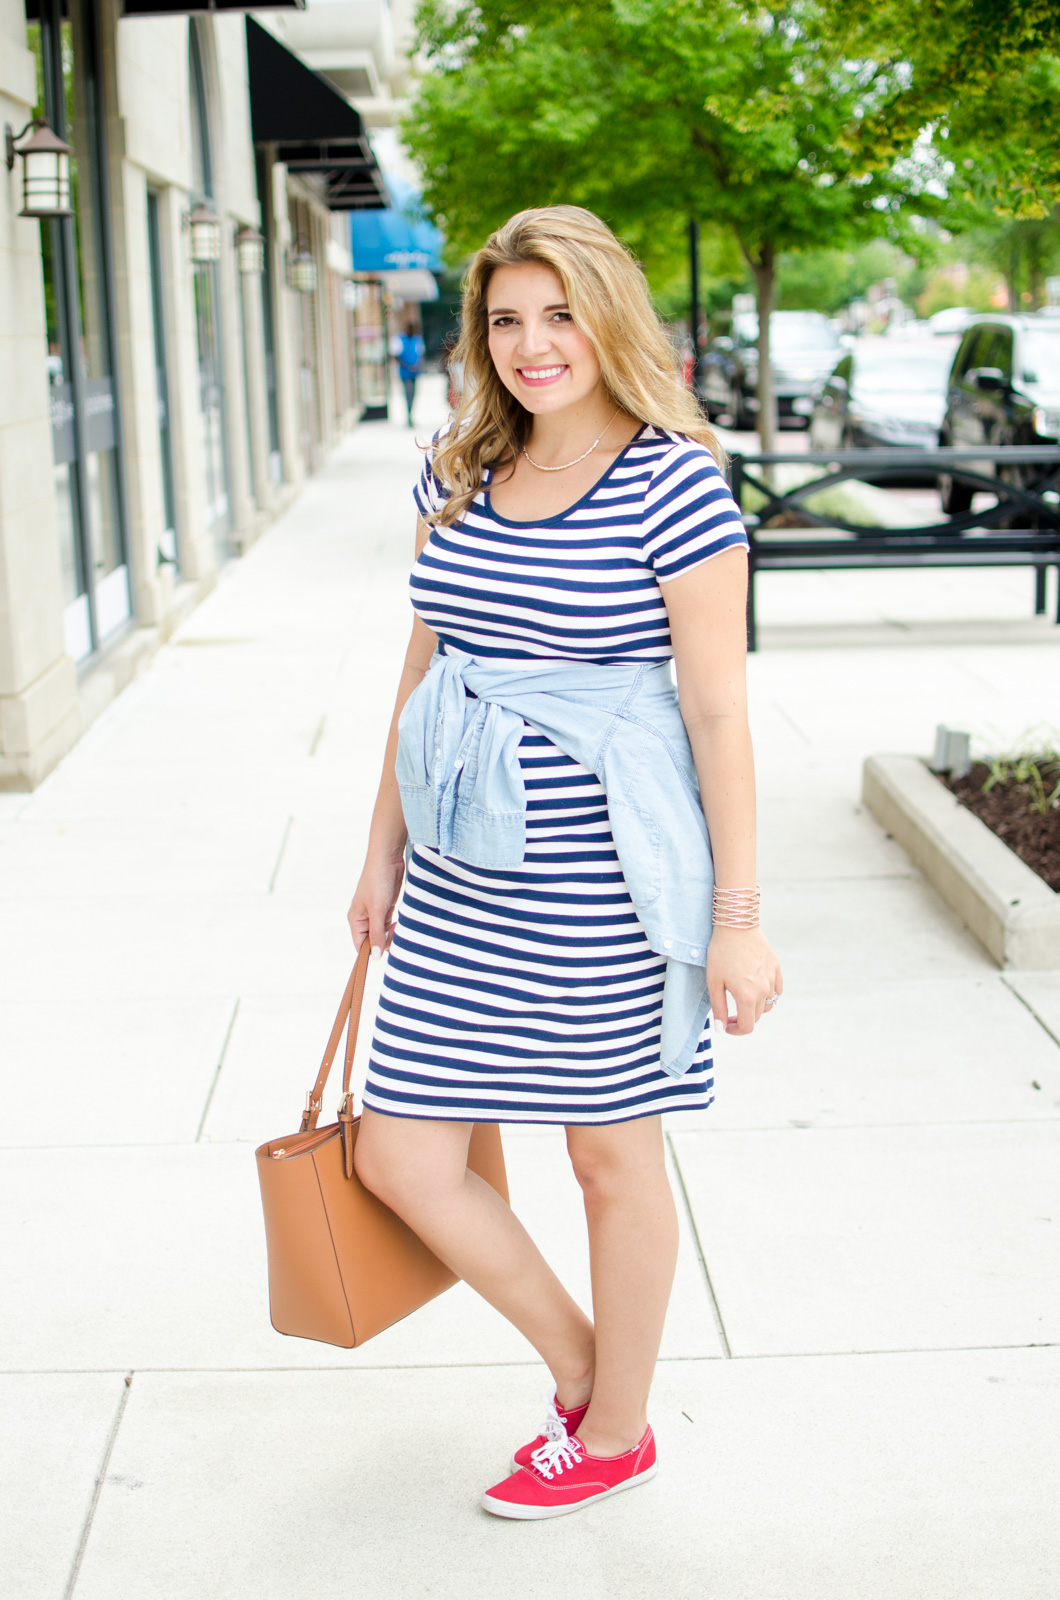 what to wear 4th of july pregnant - 4th of july maternity outfit | For more cute summer pregnancy outfits, head to bylaurenm.com